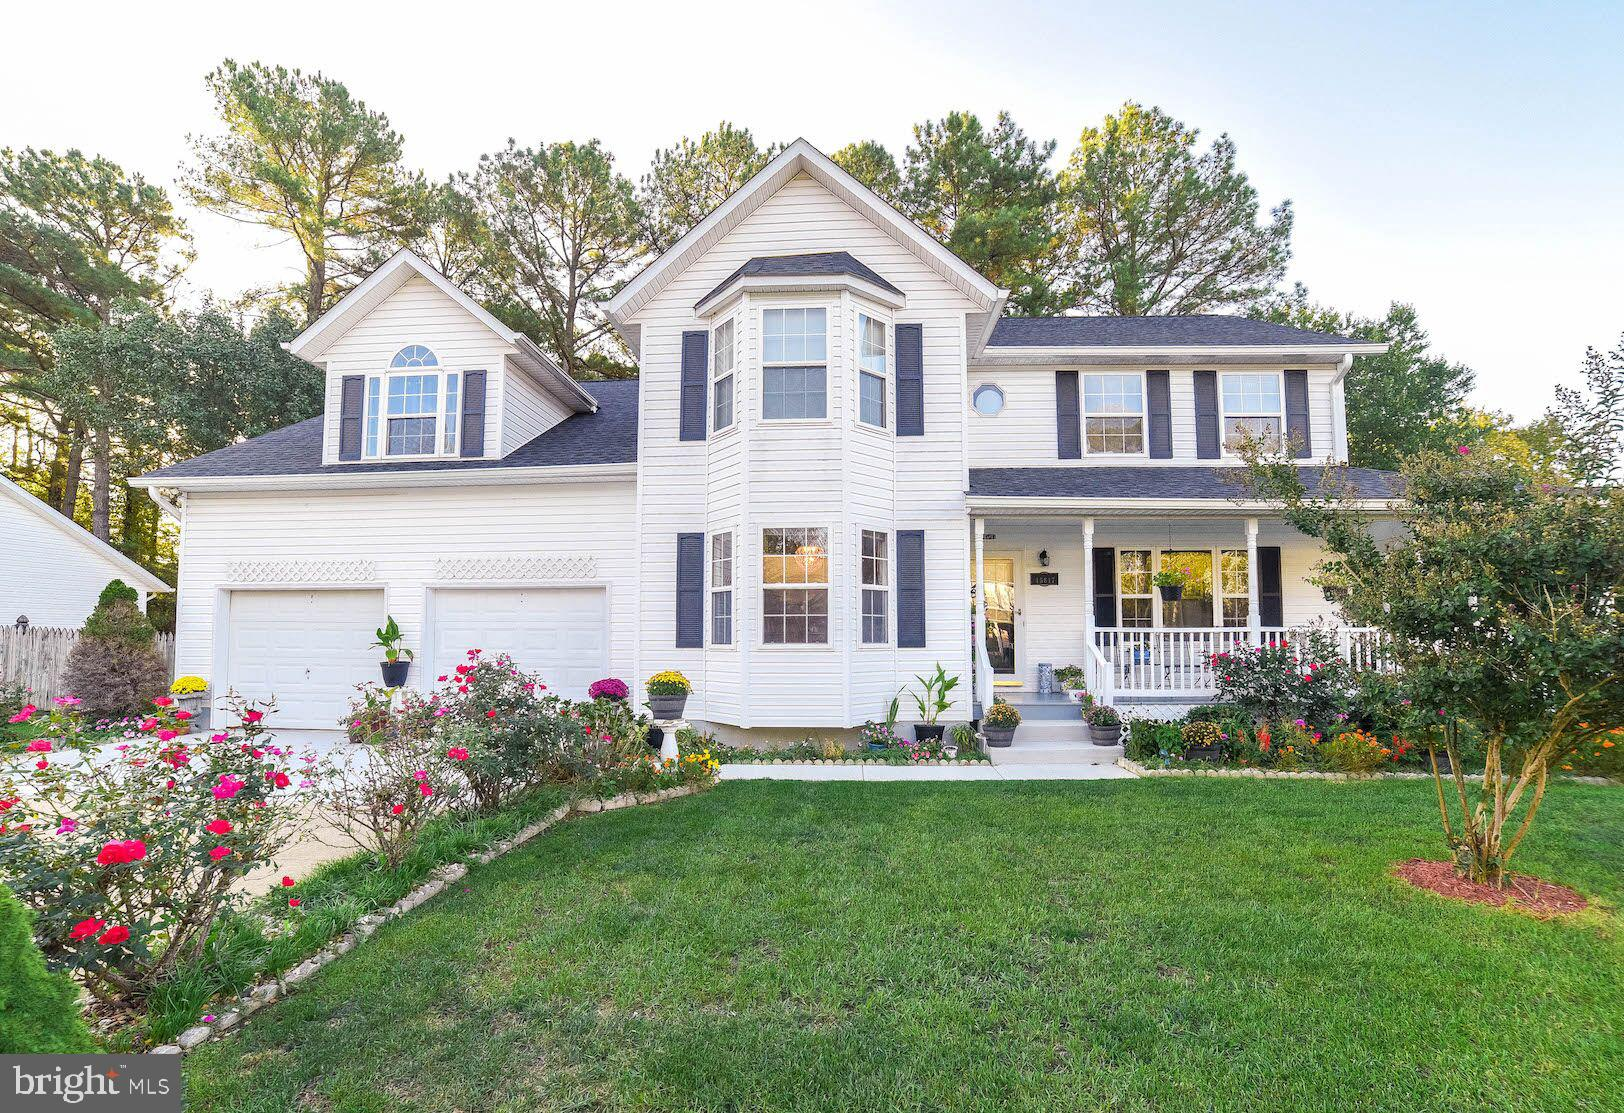 45817 MEADOWLARK DRIVE, GREAT MILLS, MD 20634